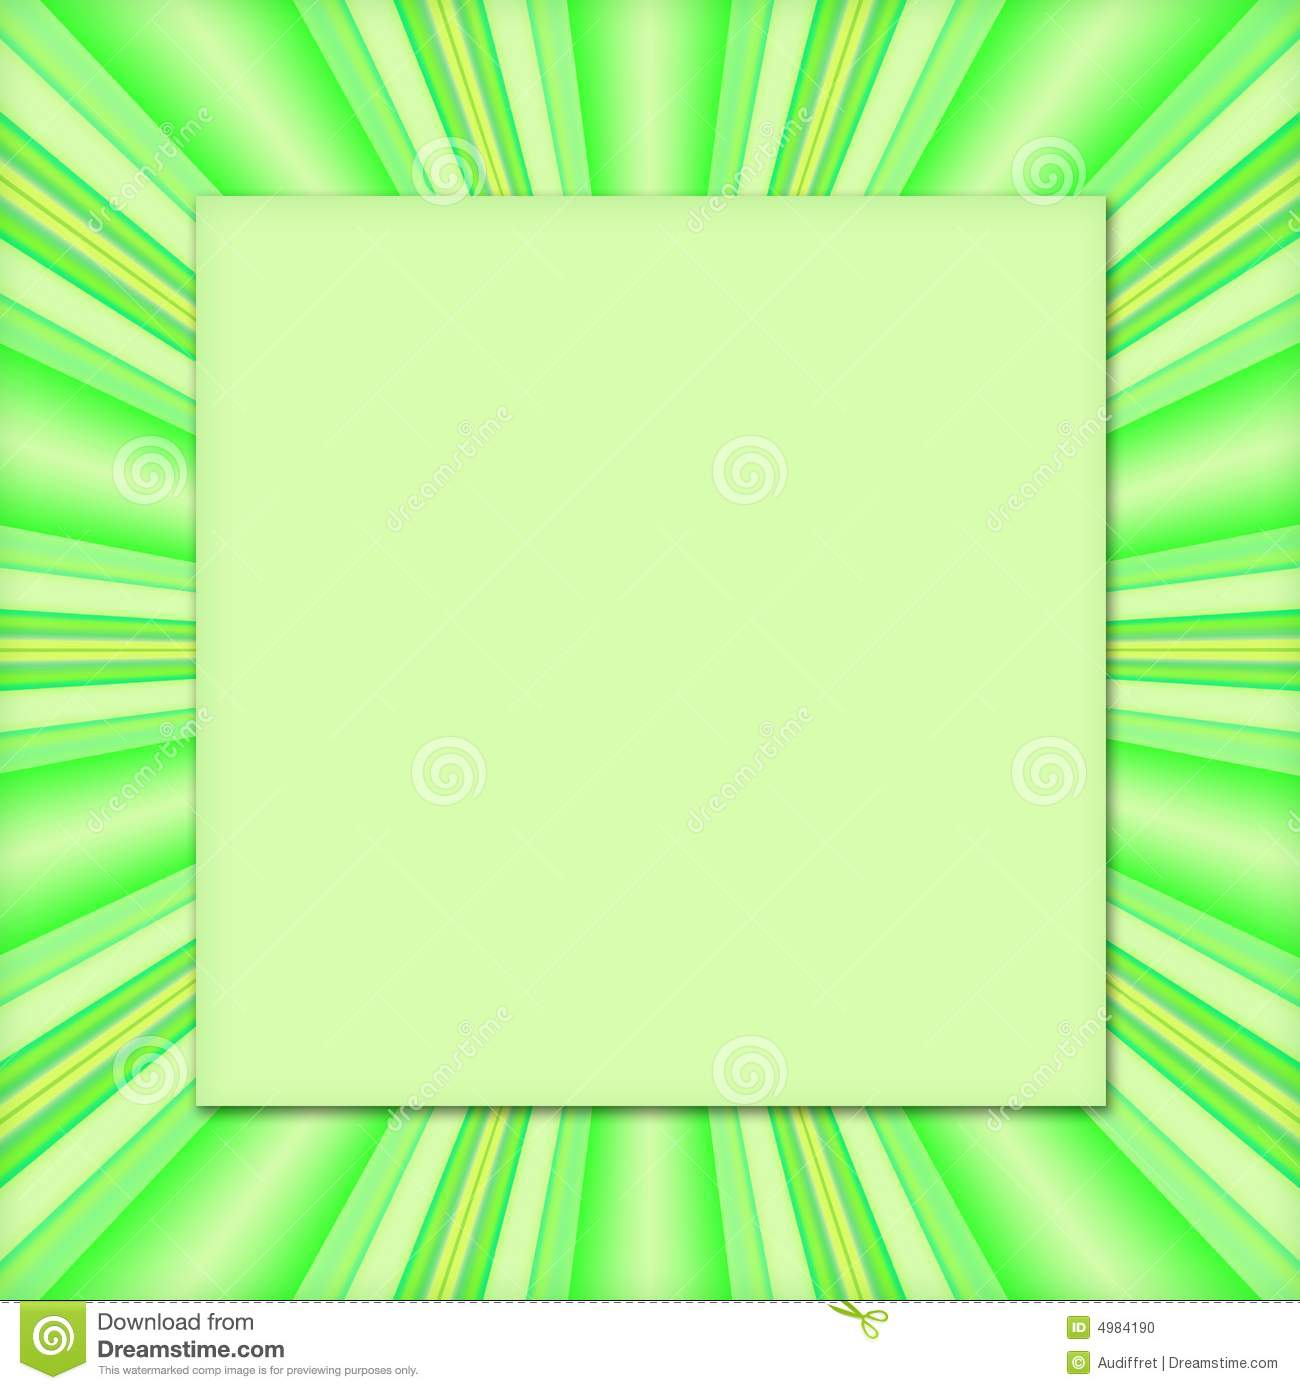 green frame background